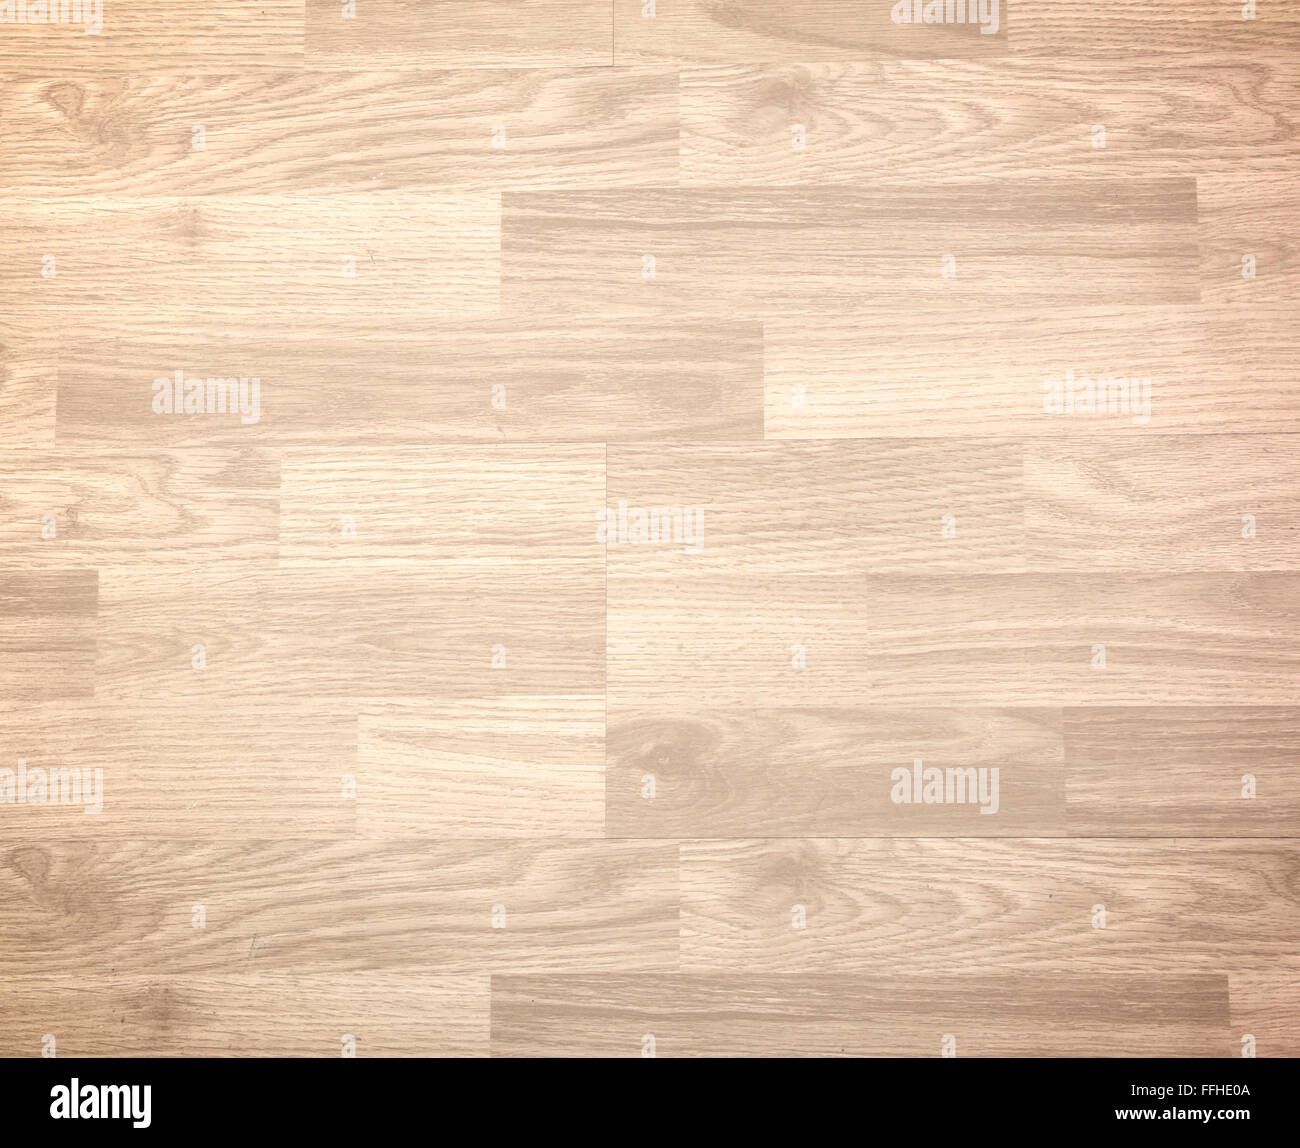 Wood Floor Texture Stock Photos Amp Wood Floor Texture Stock